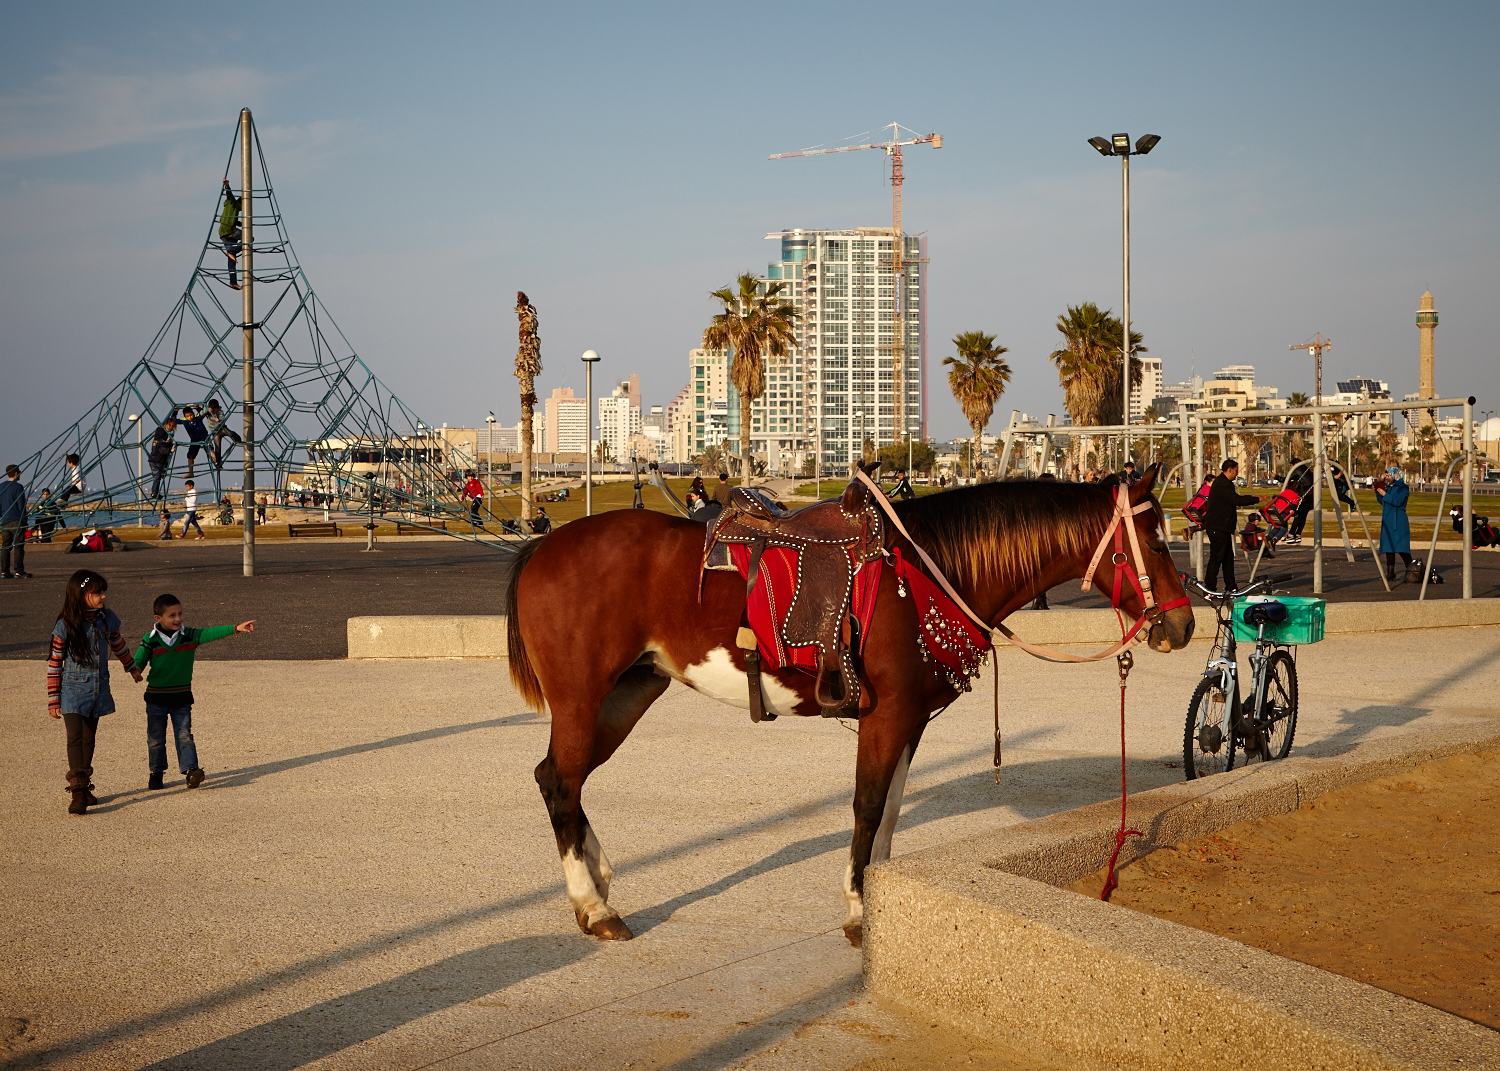 20140103_Honey_&_Co_Tel_Aviv_0556_Patricia_Niven.jpg